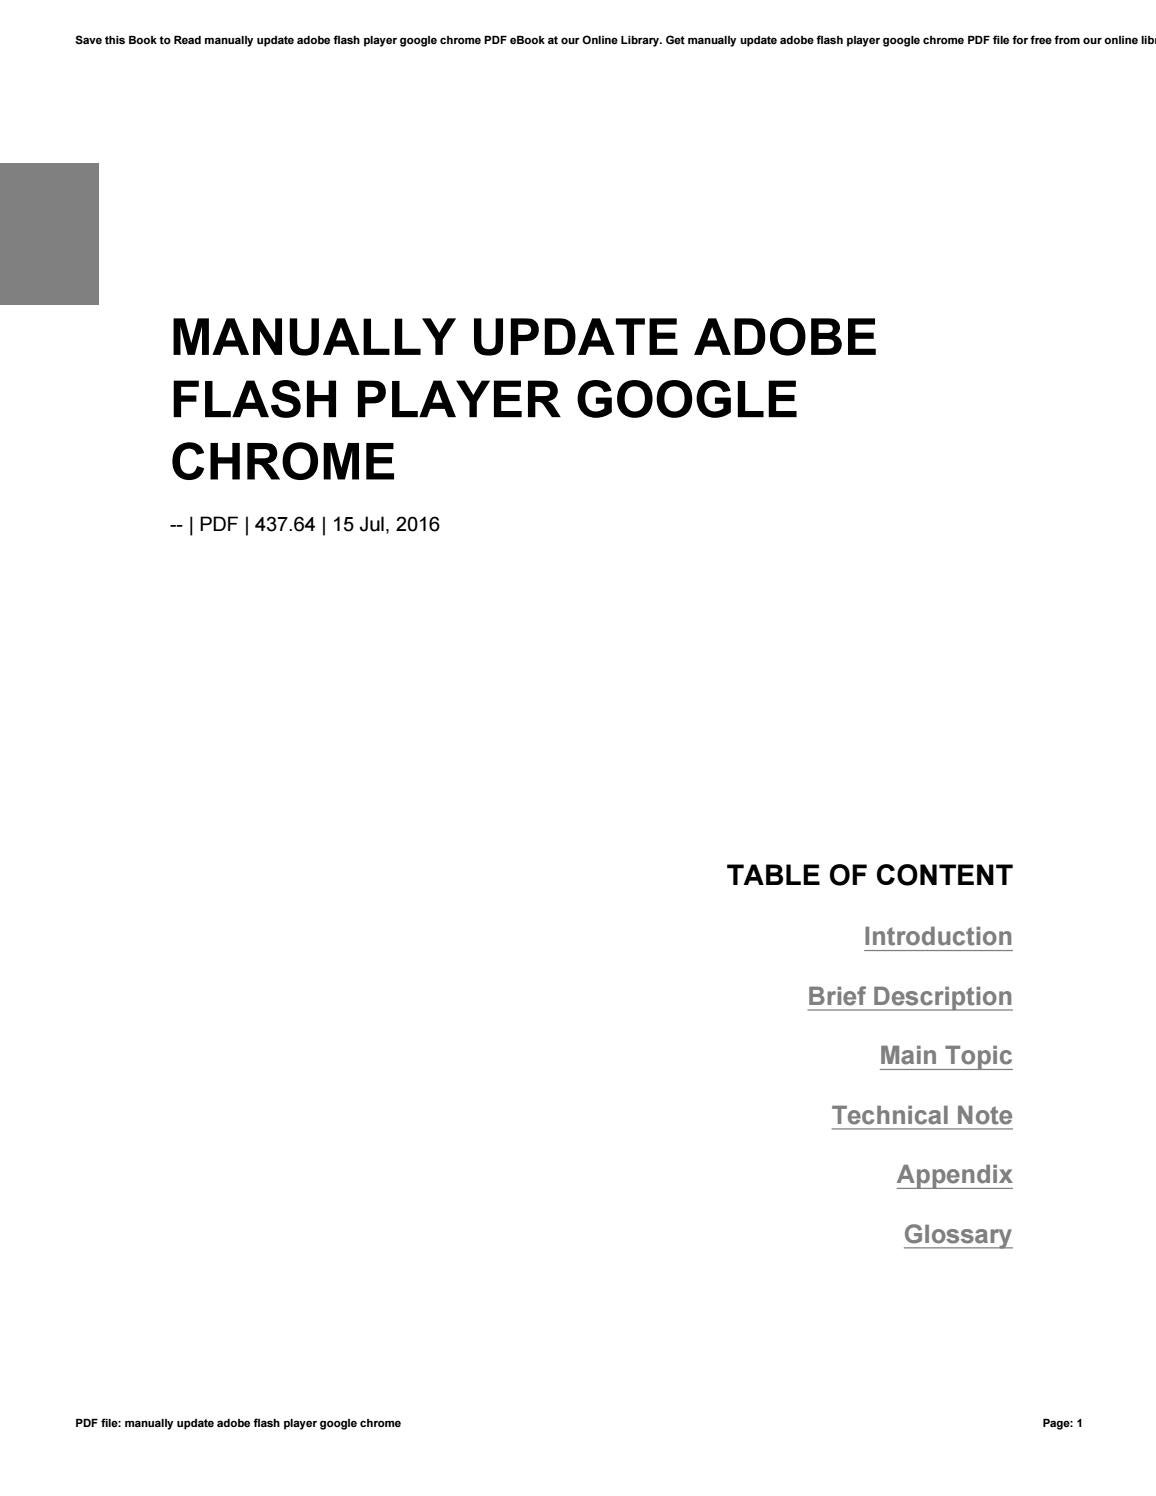 Manually update adobe flash player google chrome by